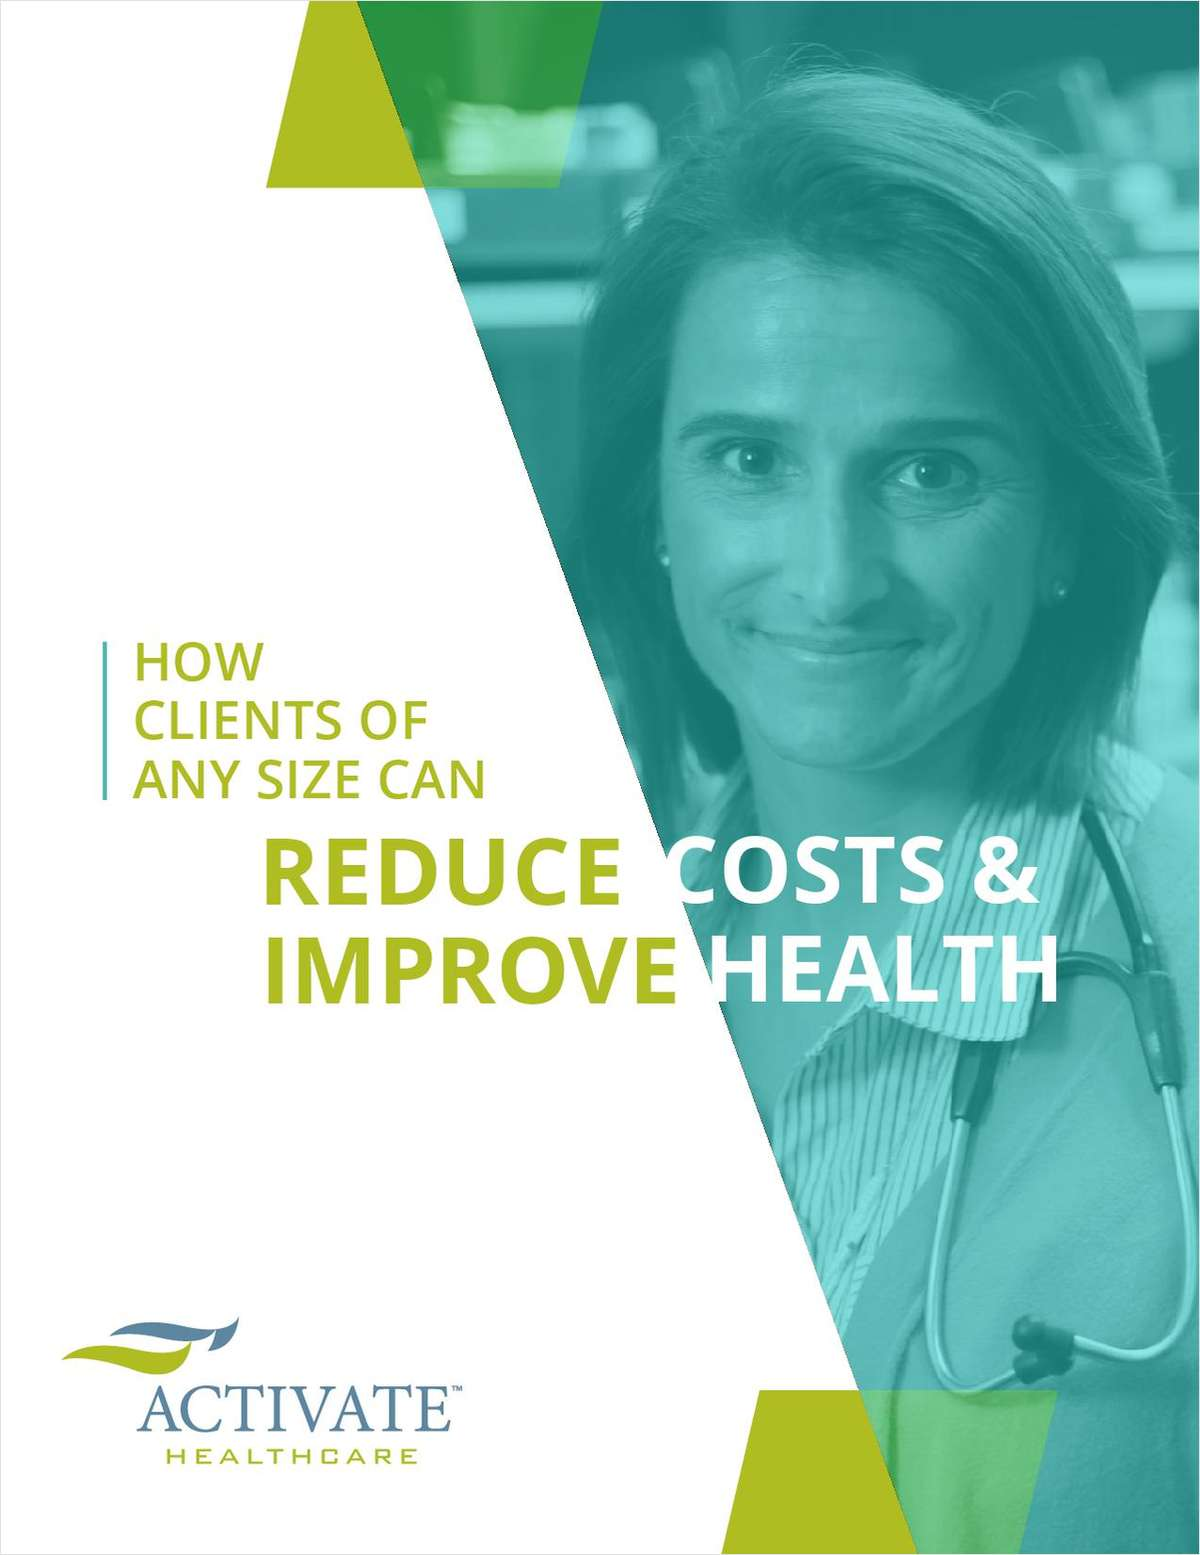 How Clients of Any Size Can Reduce Costs & Improve Health